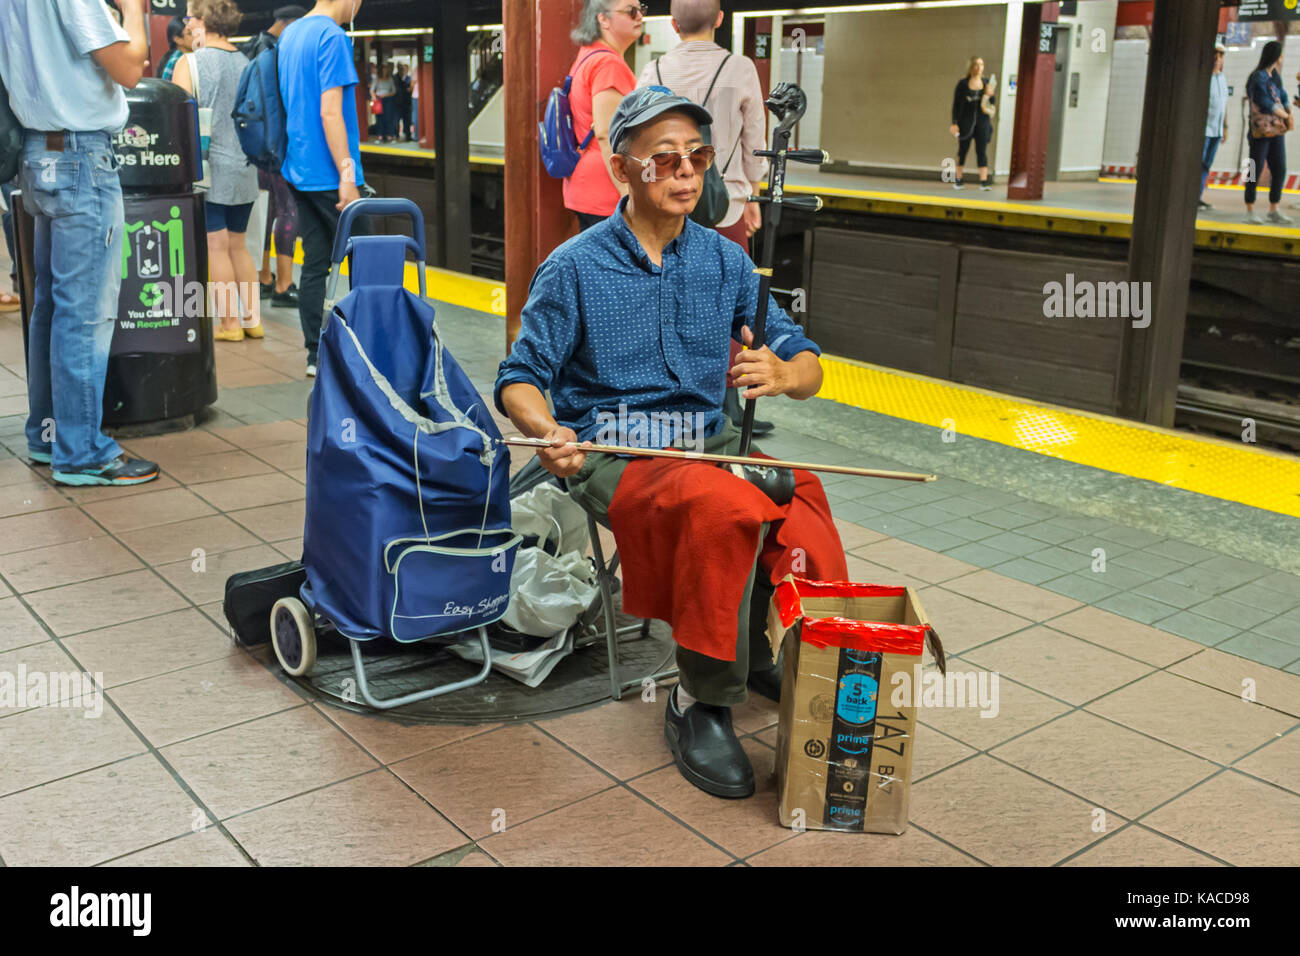 A street musician playing music in the subway in Manhattan, New York City. - Stock Image